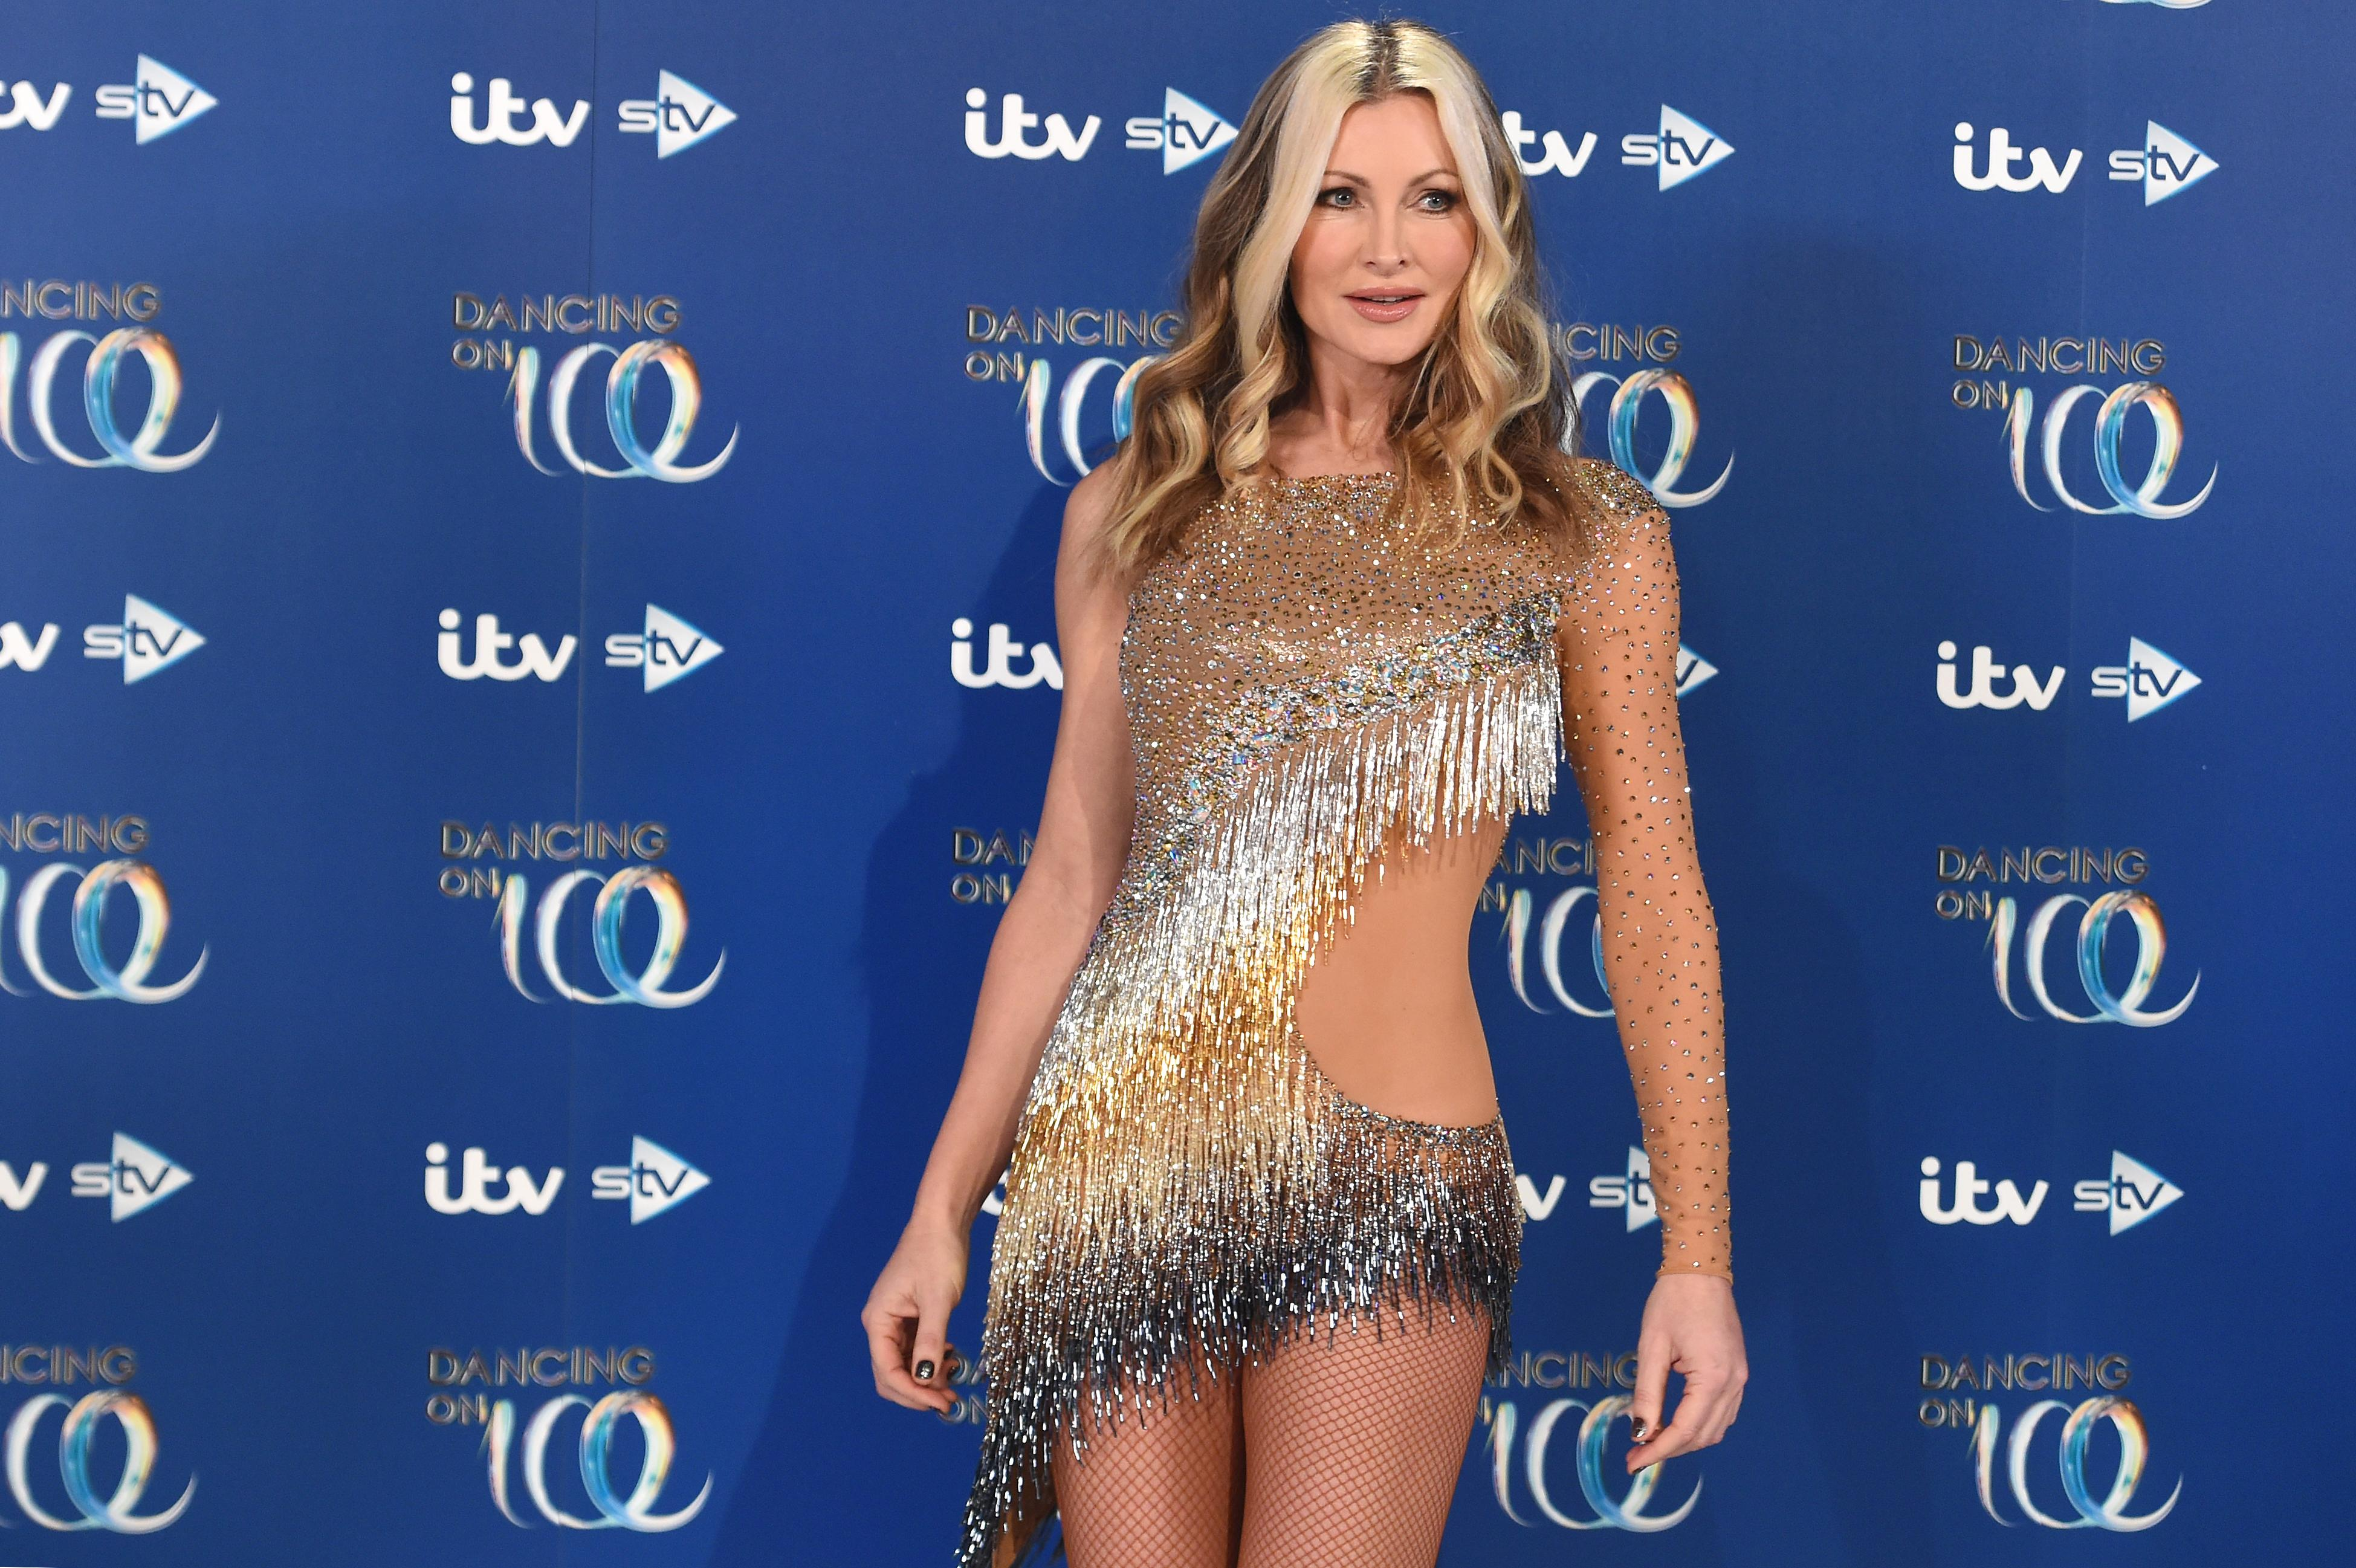 Caprice Bourret slams 'destructive' Dancing on Ice for having 'no duty of care'